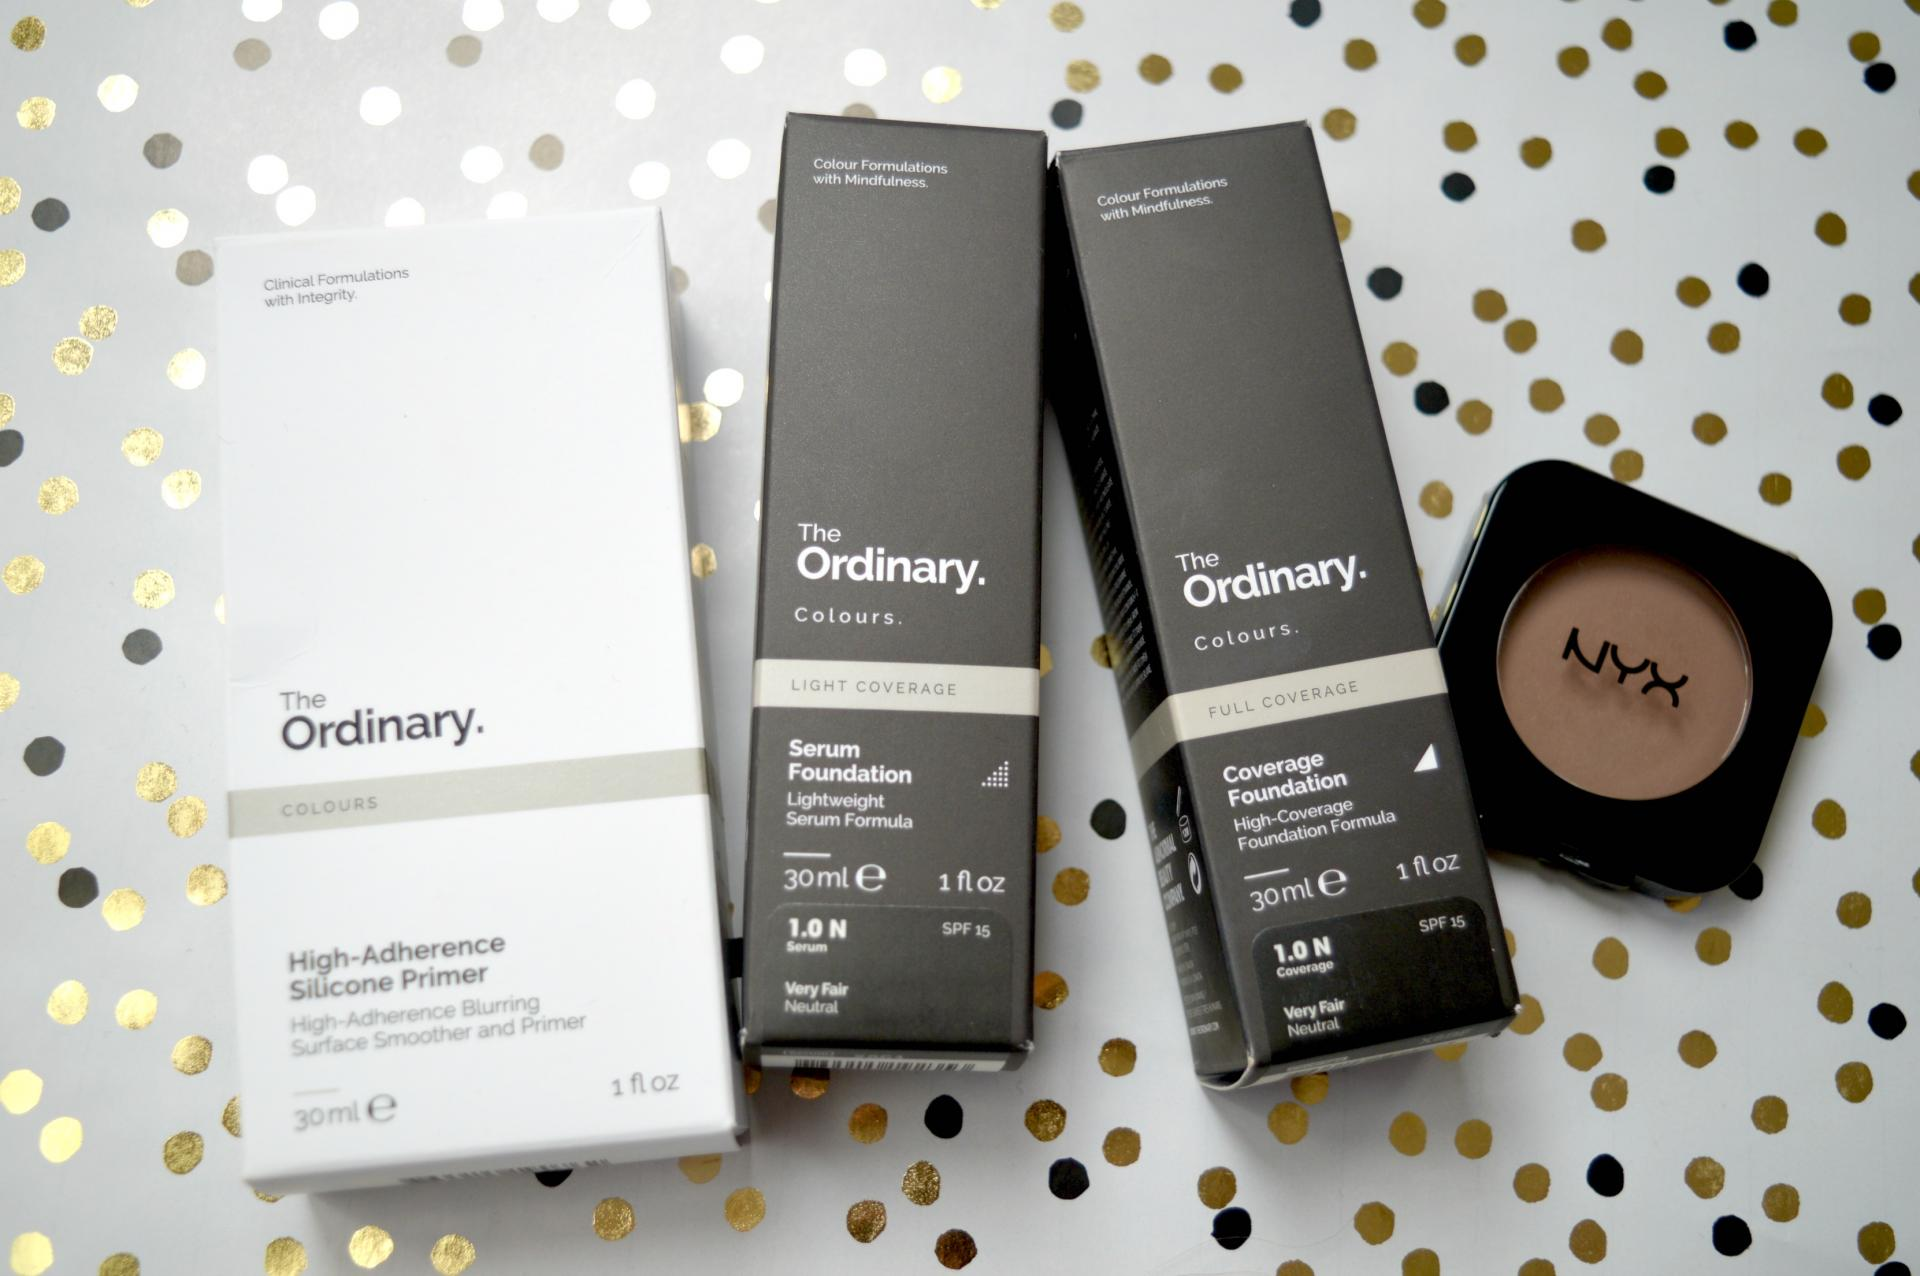 4 Awesome Products I Picked Up From Cult Beauty | The Ordinary High-Adherence Silicone Primer, The Ordinary Colours Serum Foundation, The Ordinary Colours Coverage Foundation and NYX Blush in Taupe